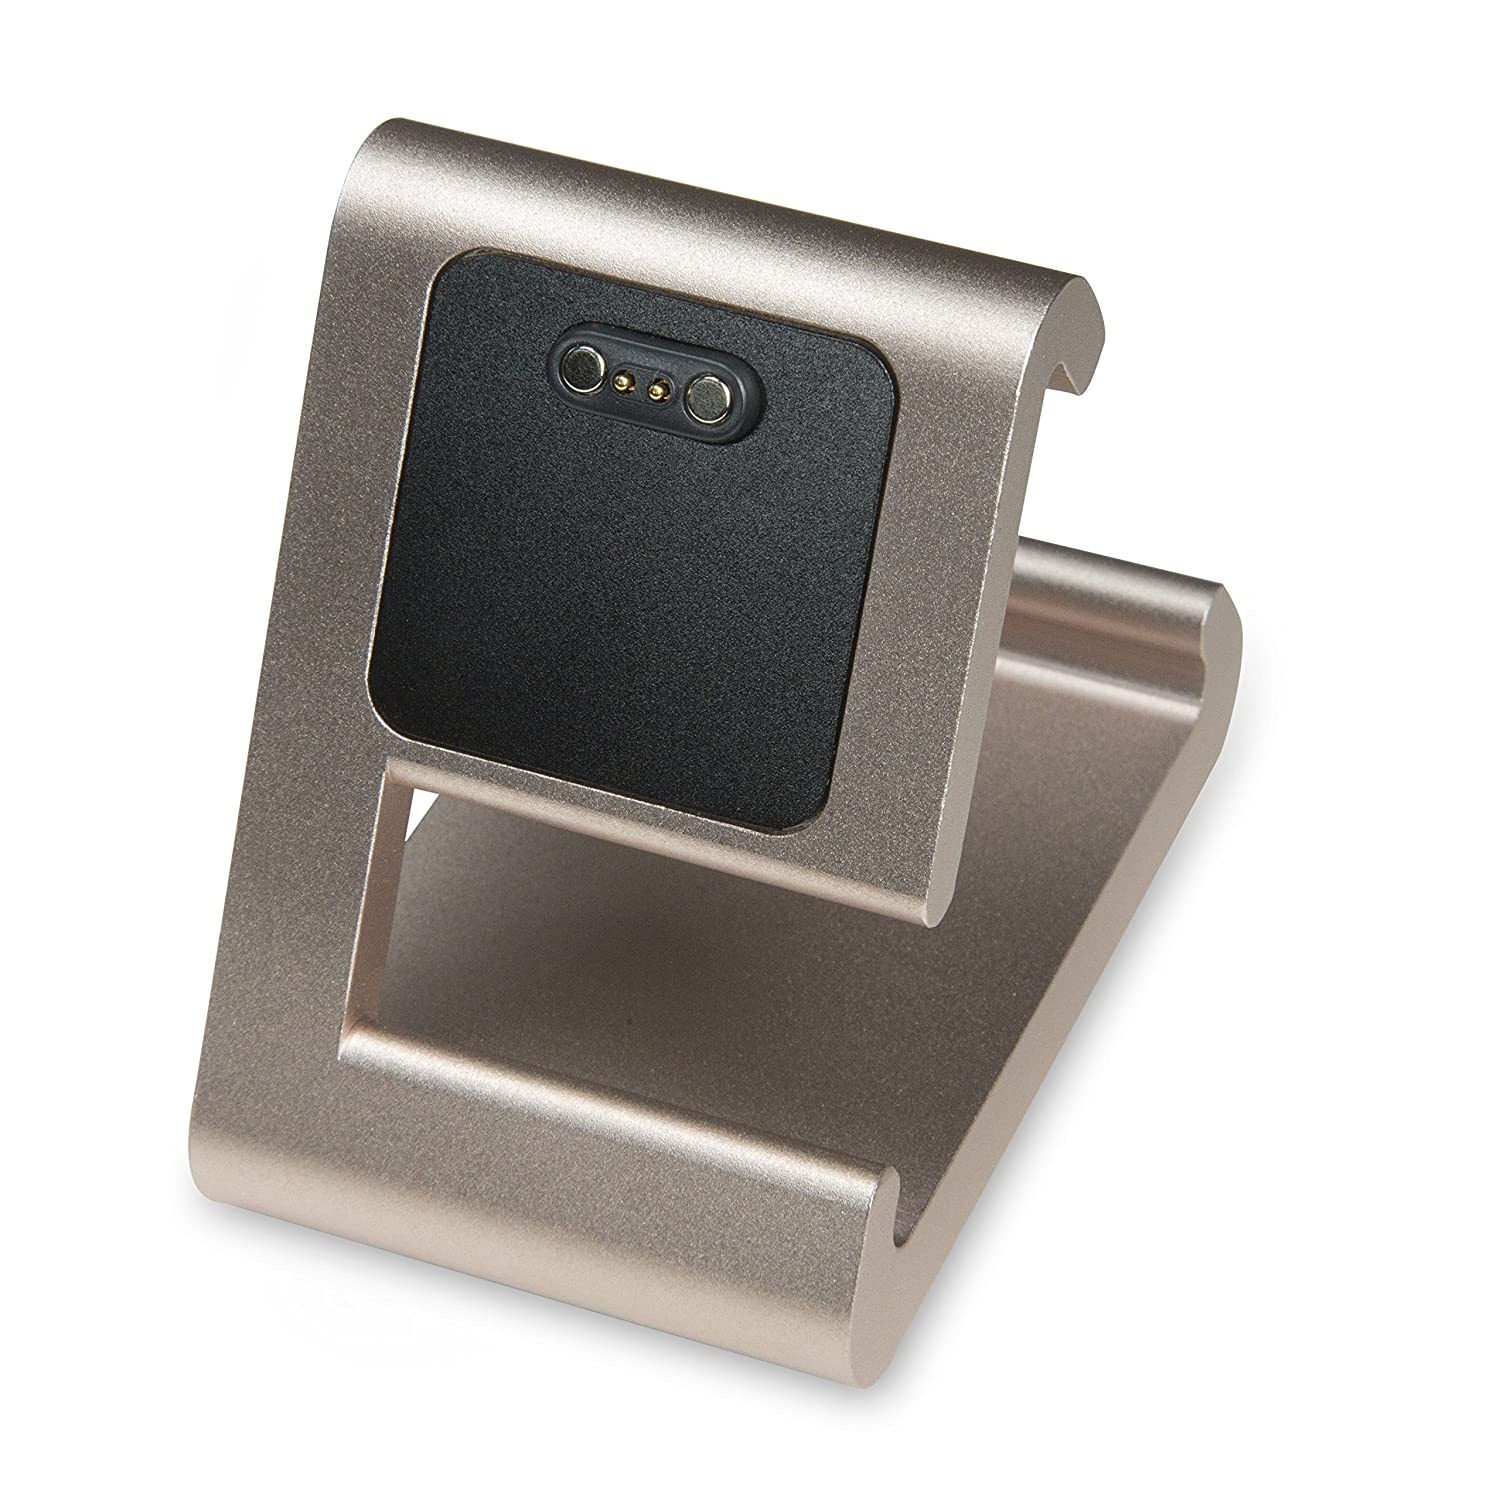 TimeDock - Charging Dock for Pebble Time, Pebble Time Steel, & Pebble Time Round (Gold)